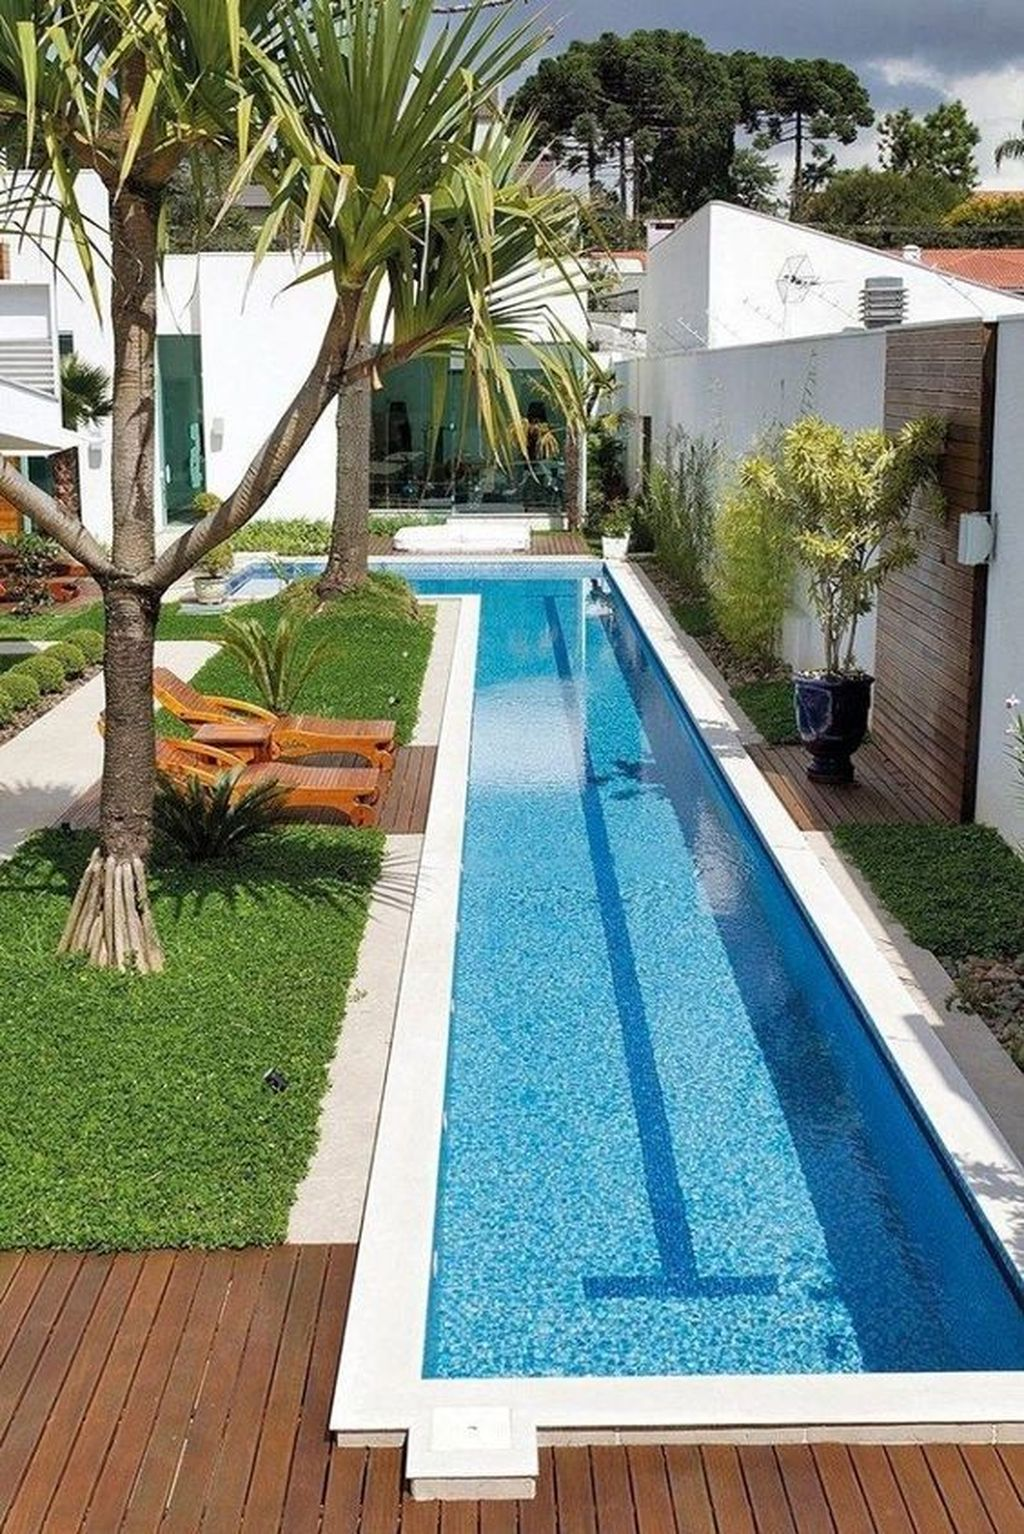 Fabulous Backyard Pool Landscaping Ideas You Never Seen Before 18